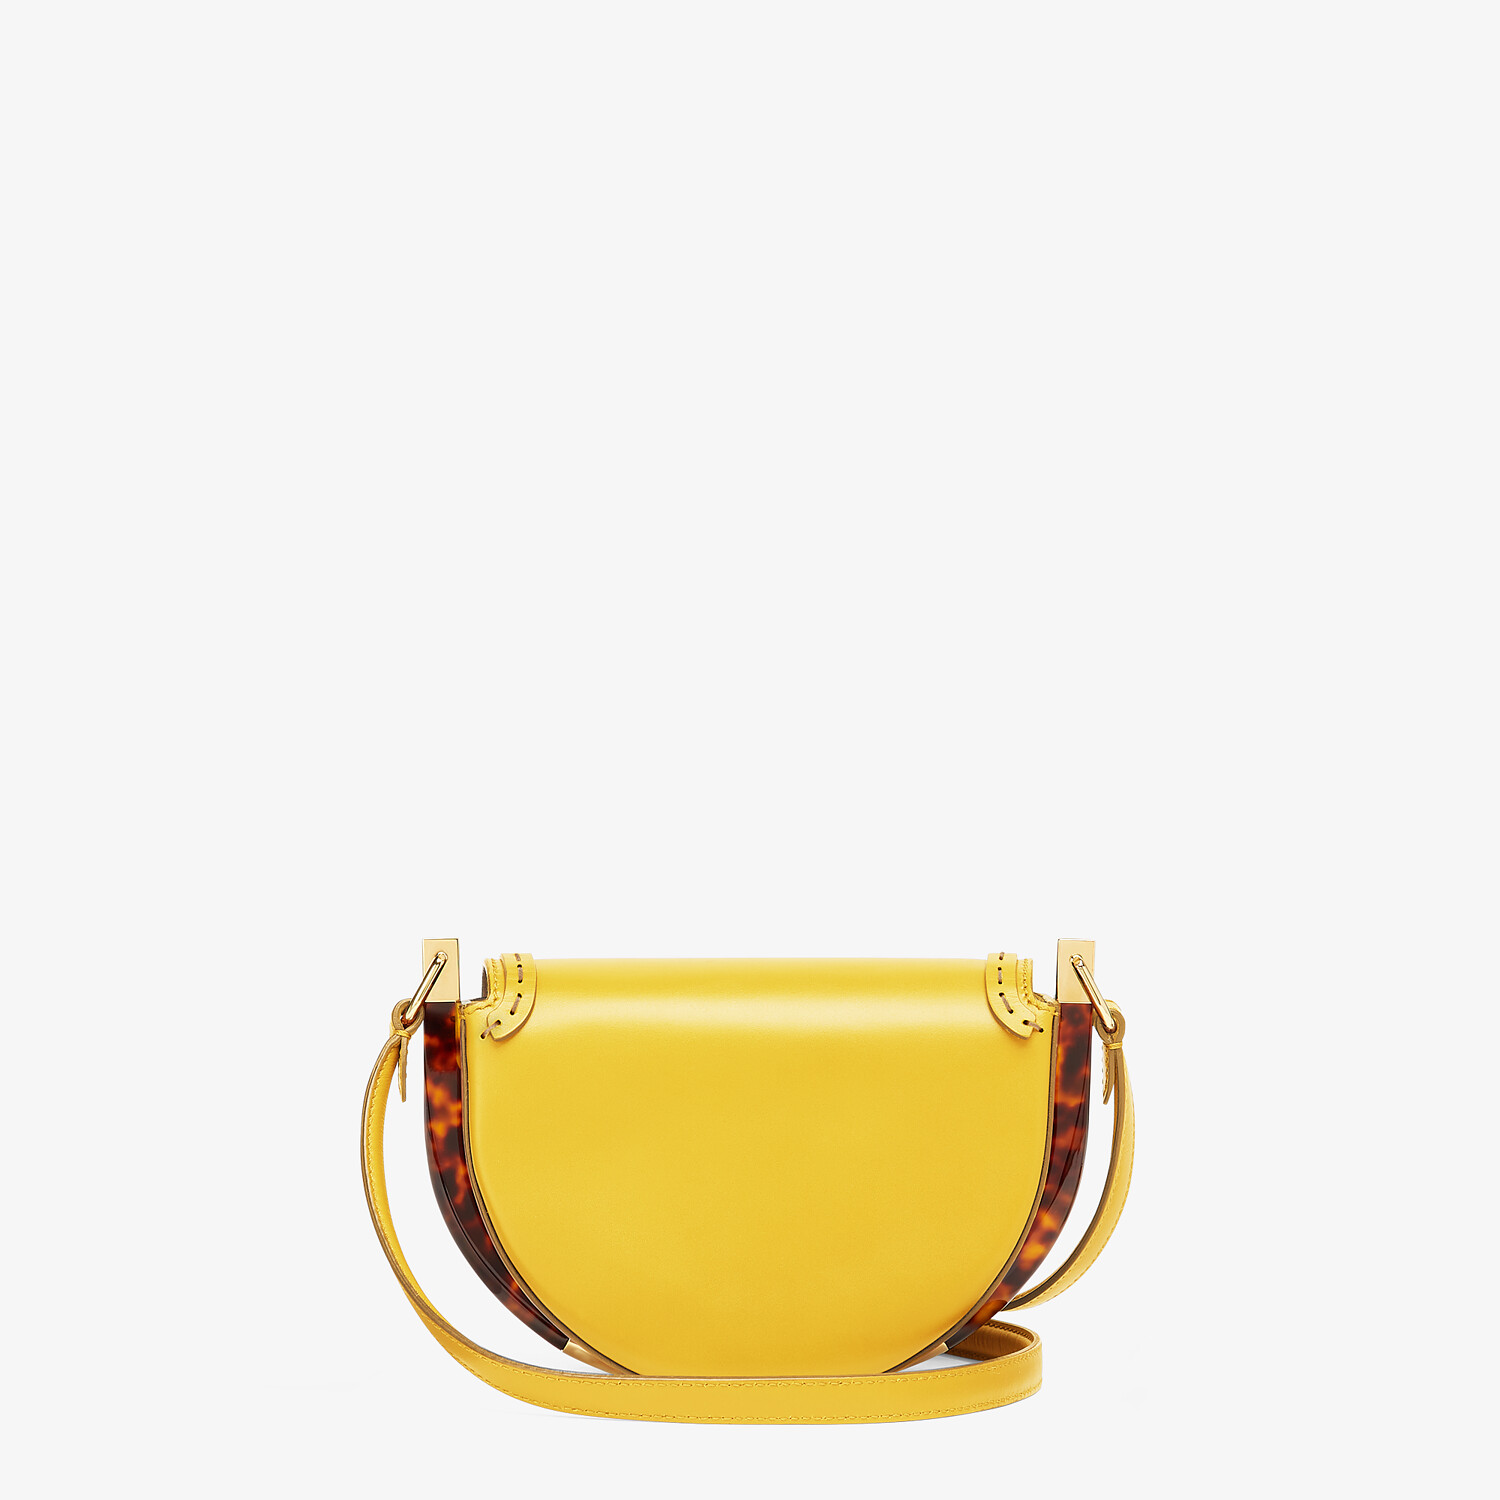 FENDI MOONLIGHT - Yellow leather bag - view 3 detail